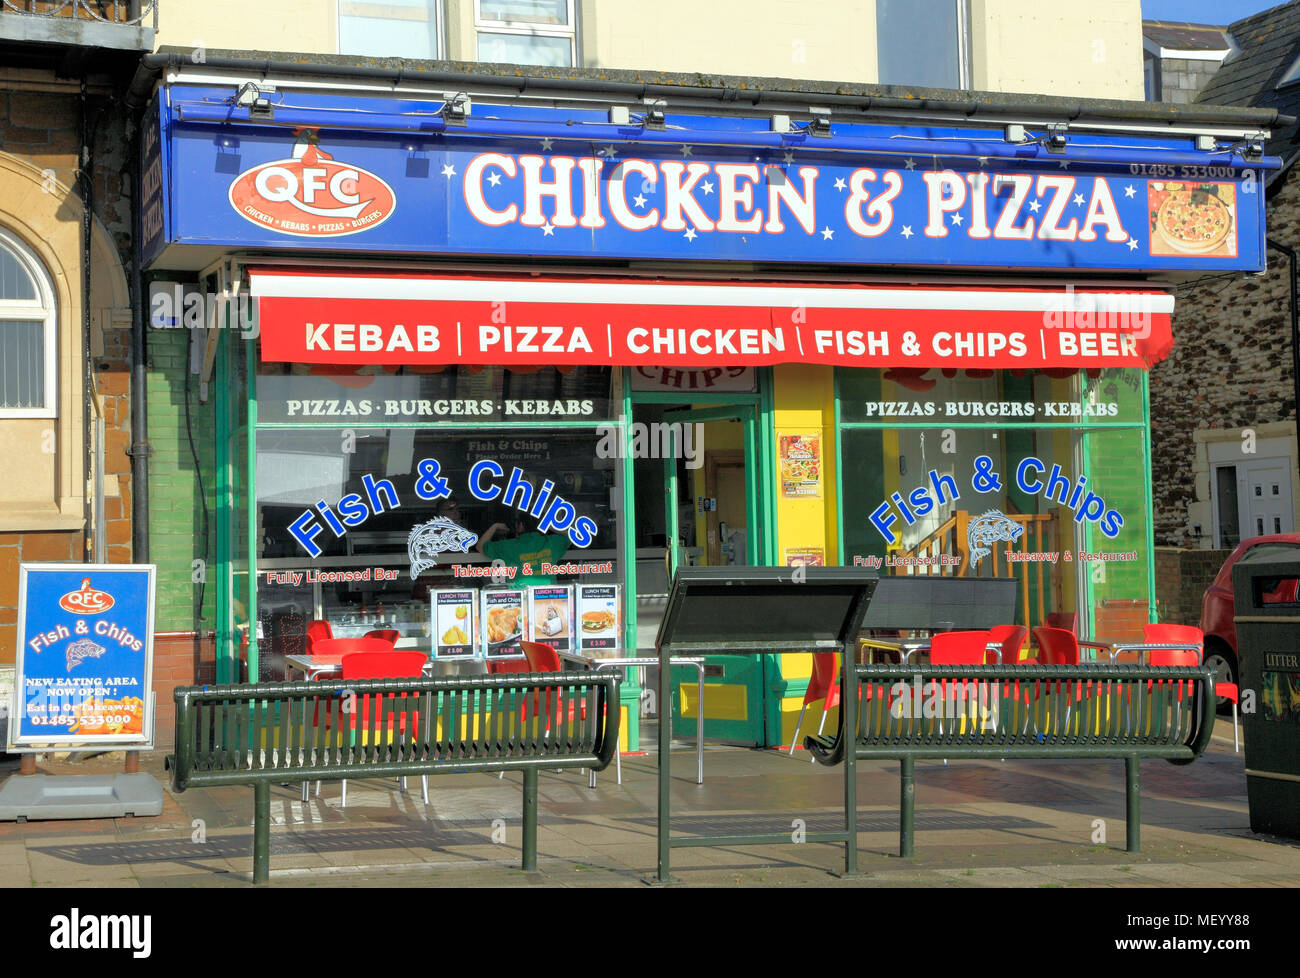 QFC, Chicken & Pizza , fast food outlet, shop, Hunstanton, Norfolk, England, UK, take away, meal, meals, chicken, Pizzas - Stock Image